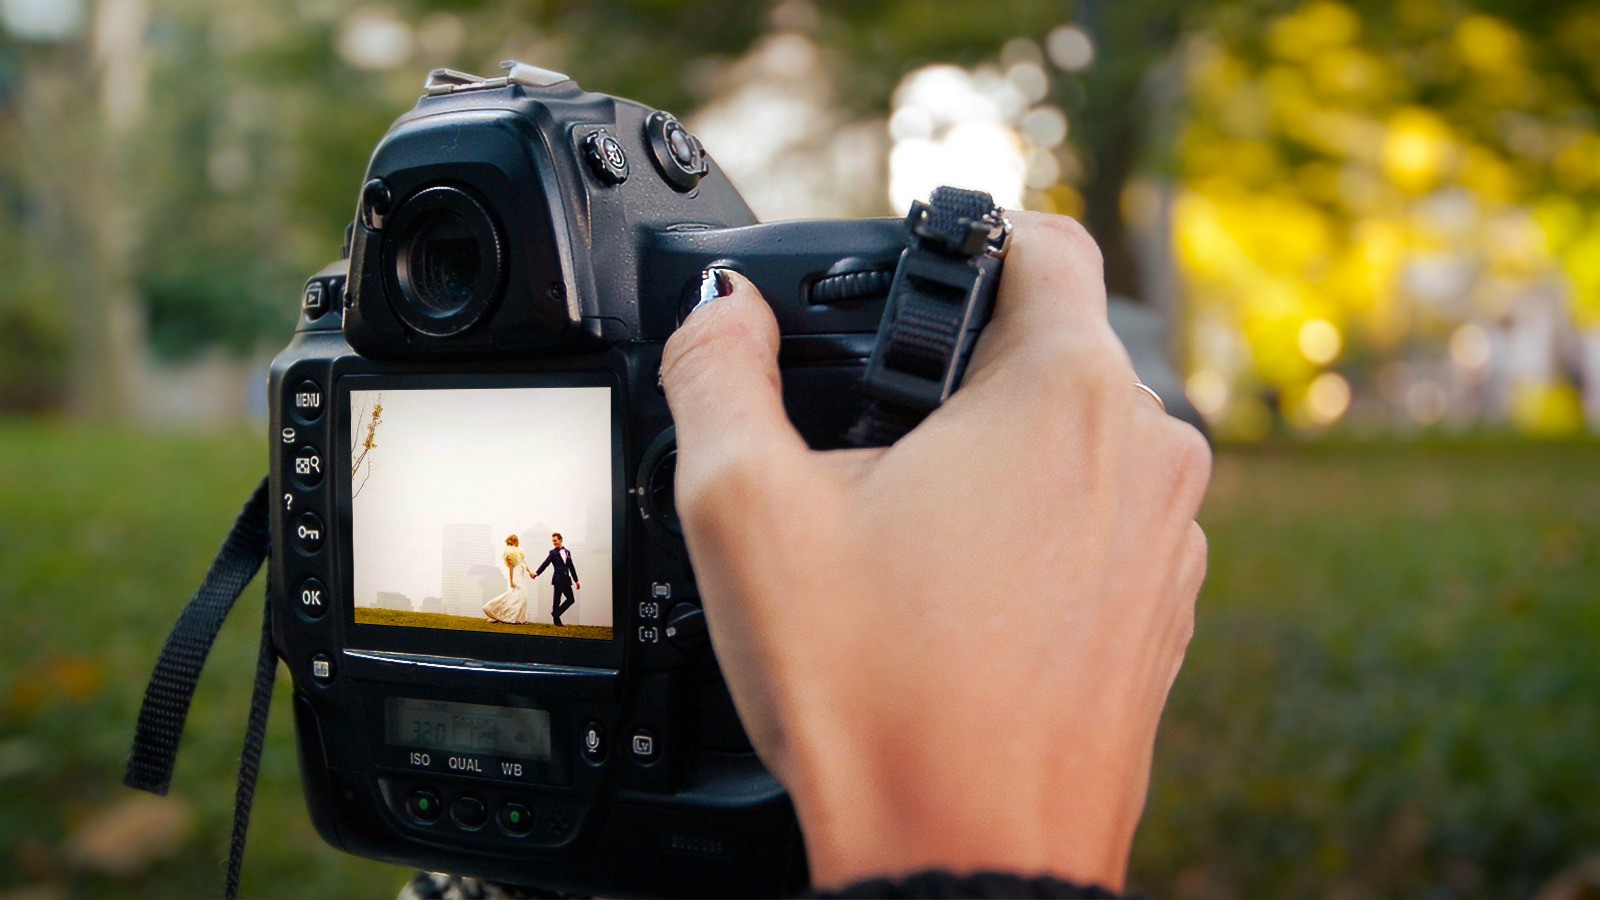 Make Your Normal Pictures Perfect With Pro Photographer